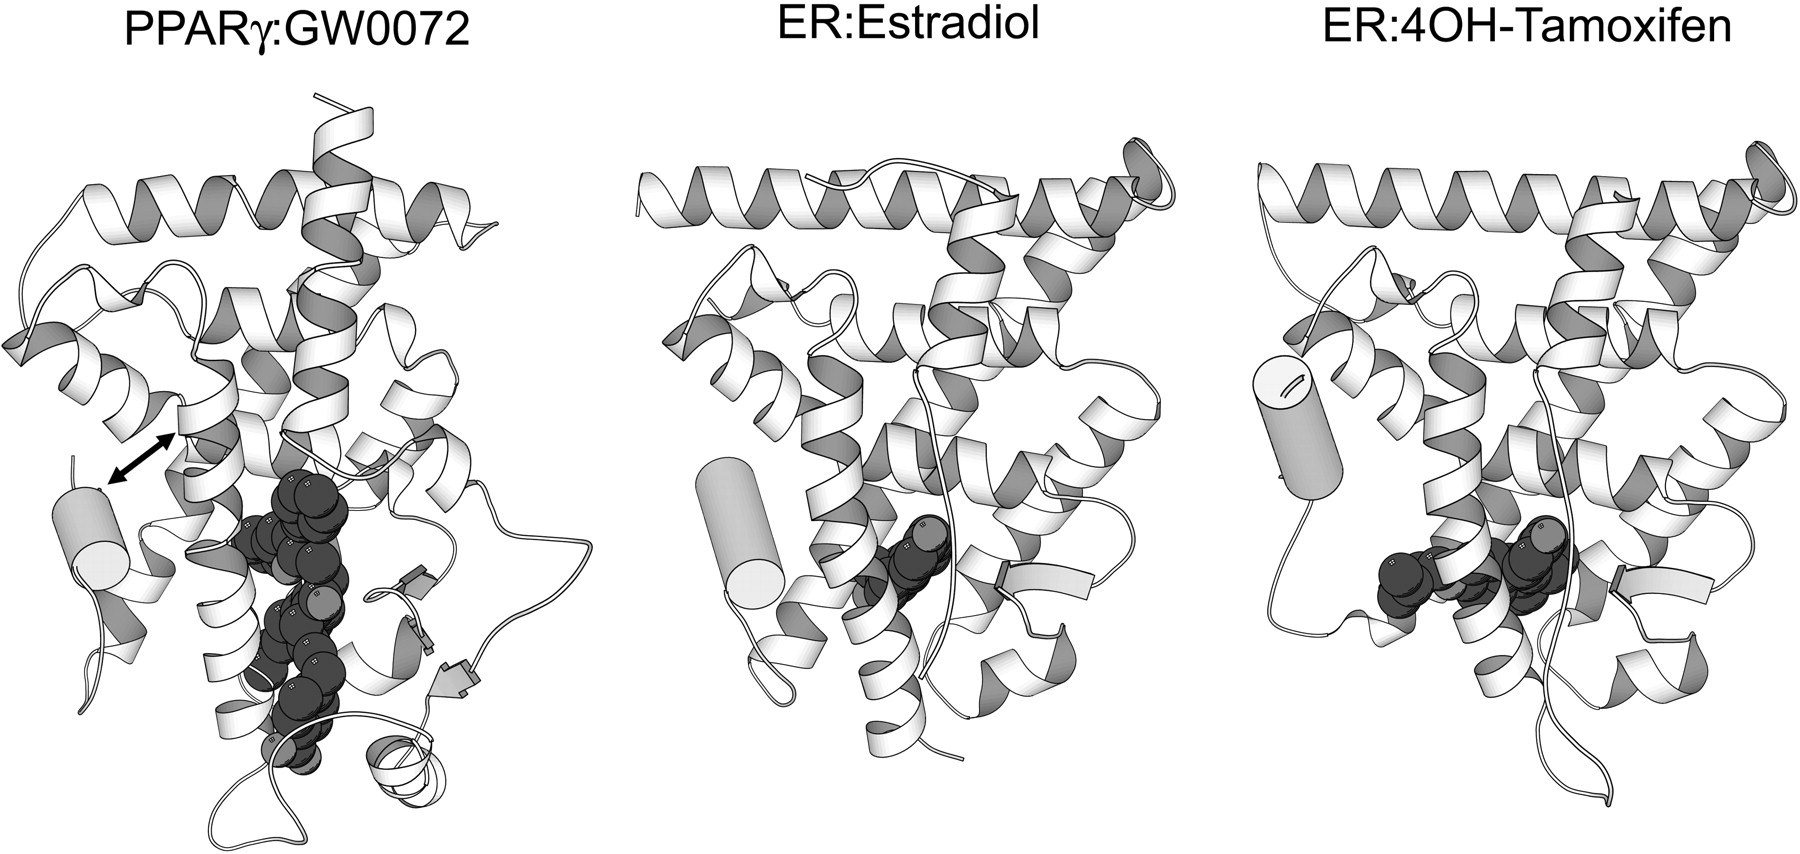 Molecular Mechanisms Of Cytochrome P 450 Induction By